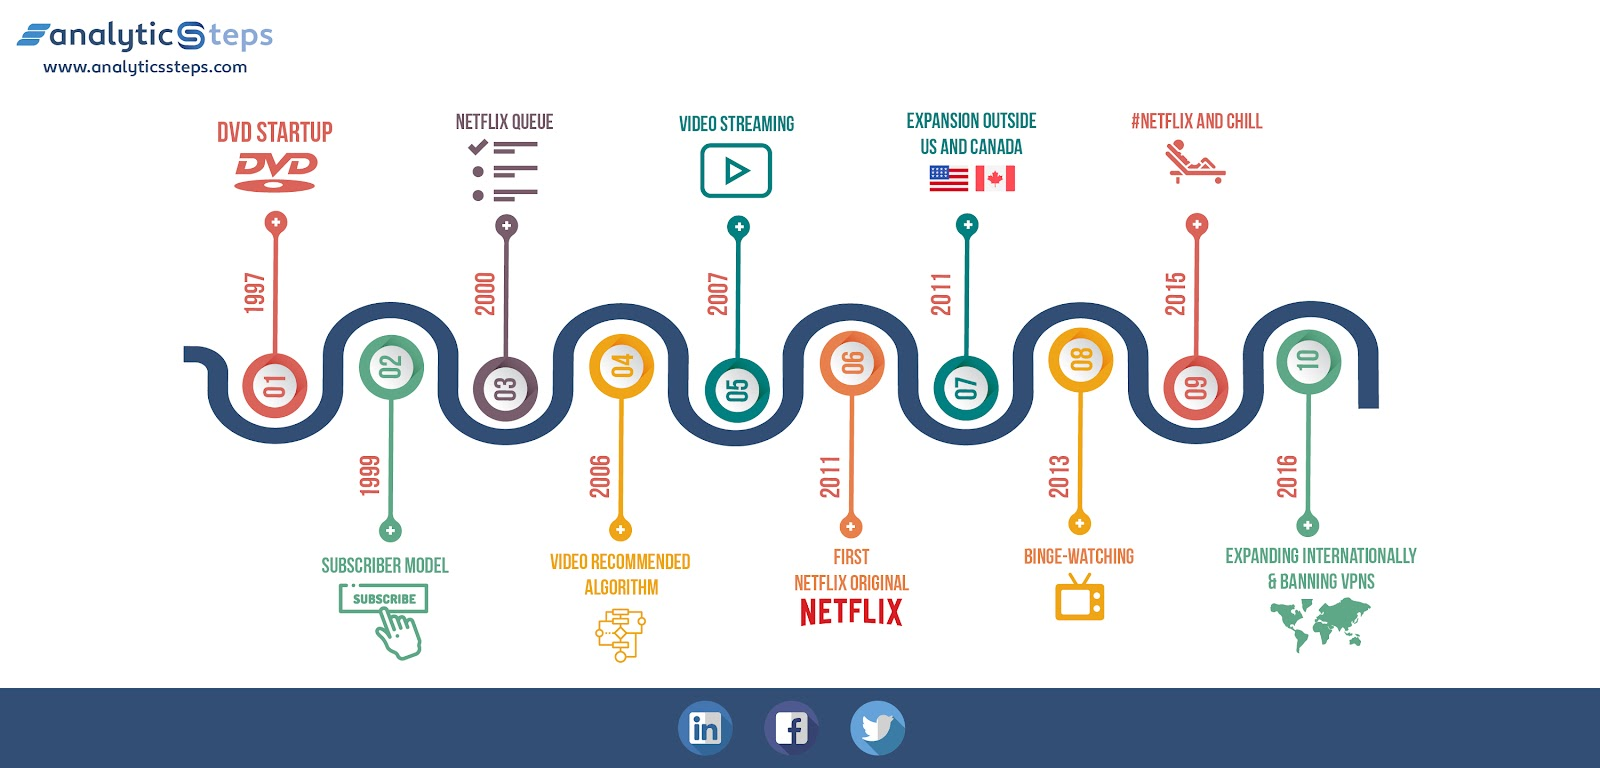 The image showcases Netflix's timeline starting from its humble beginning to the lucrative stage it has reached now. Analytics Steps